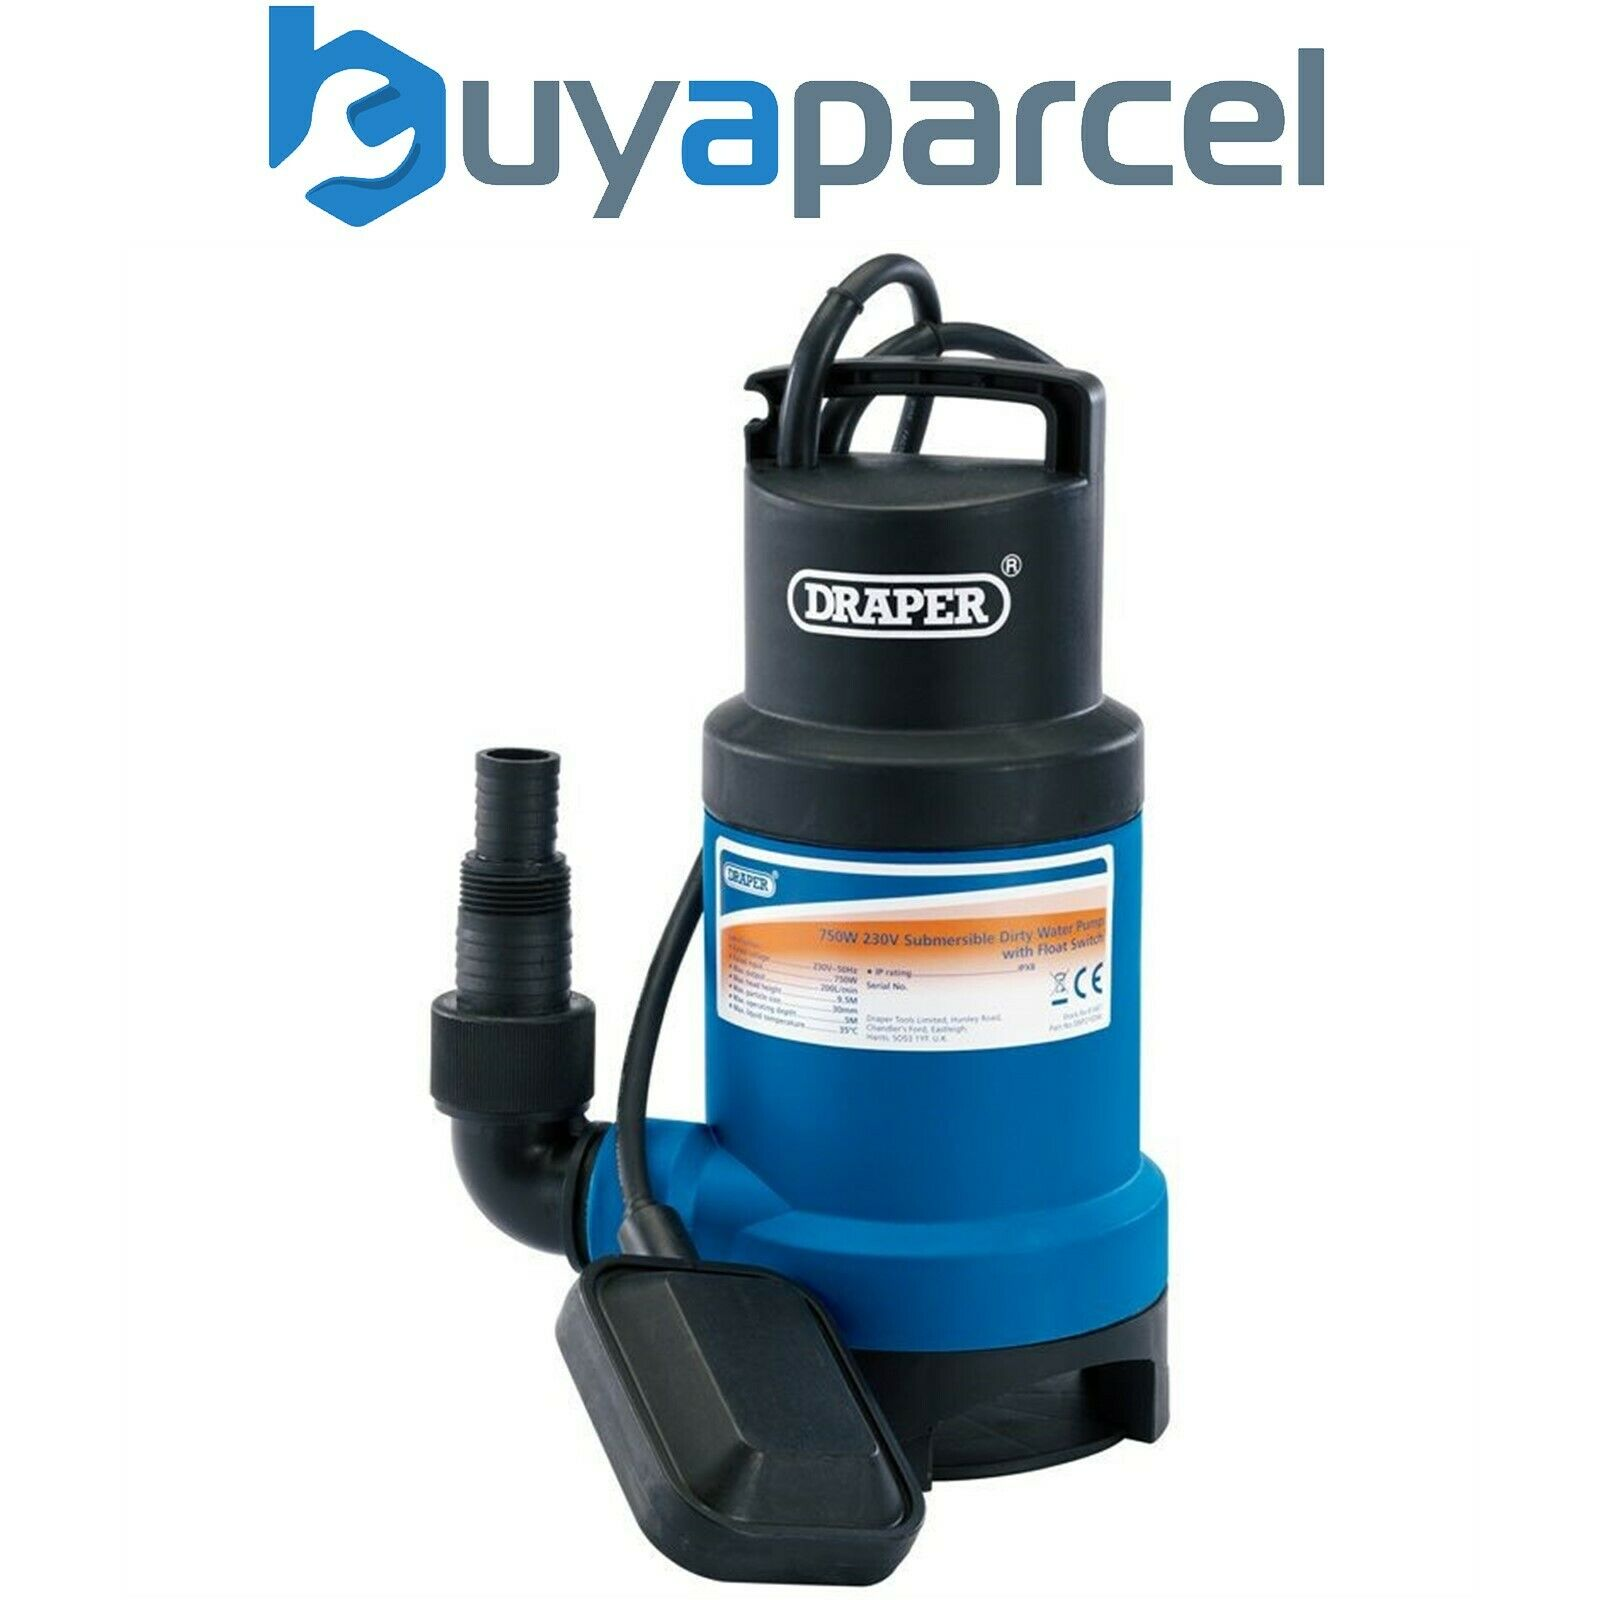 Draper 61667 Submersible Sub Dirty Water Pump with Float Switch 200L/min